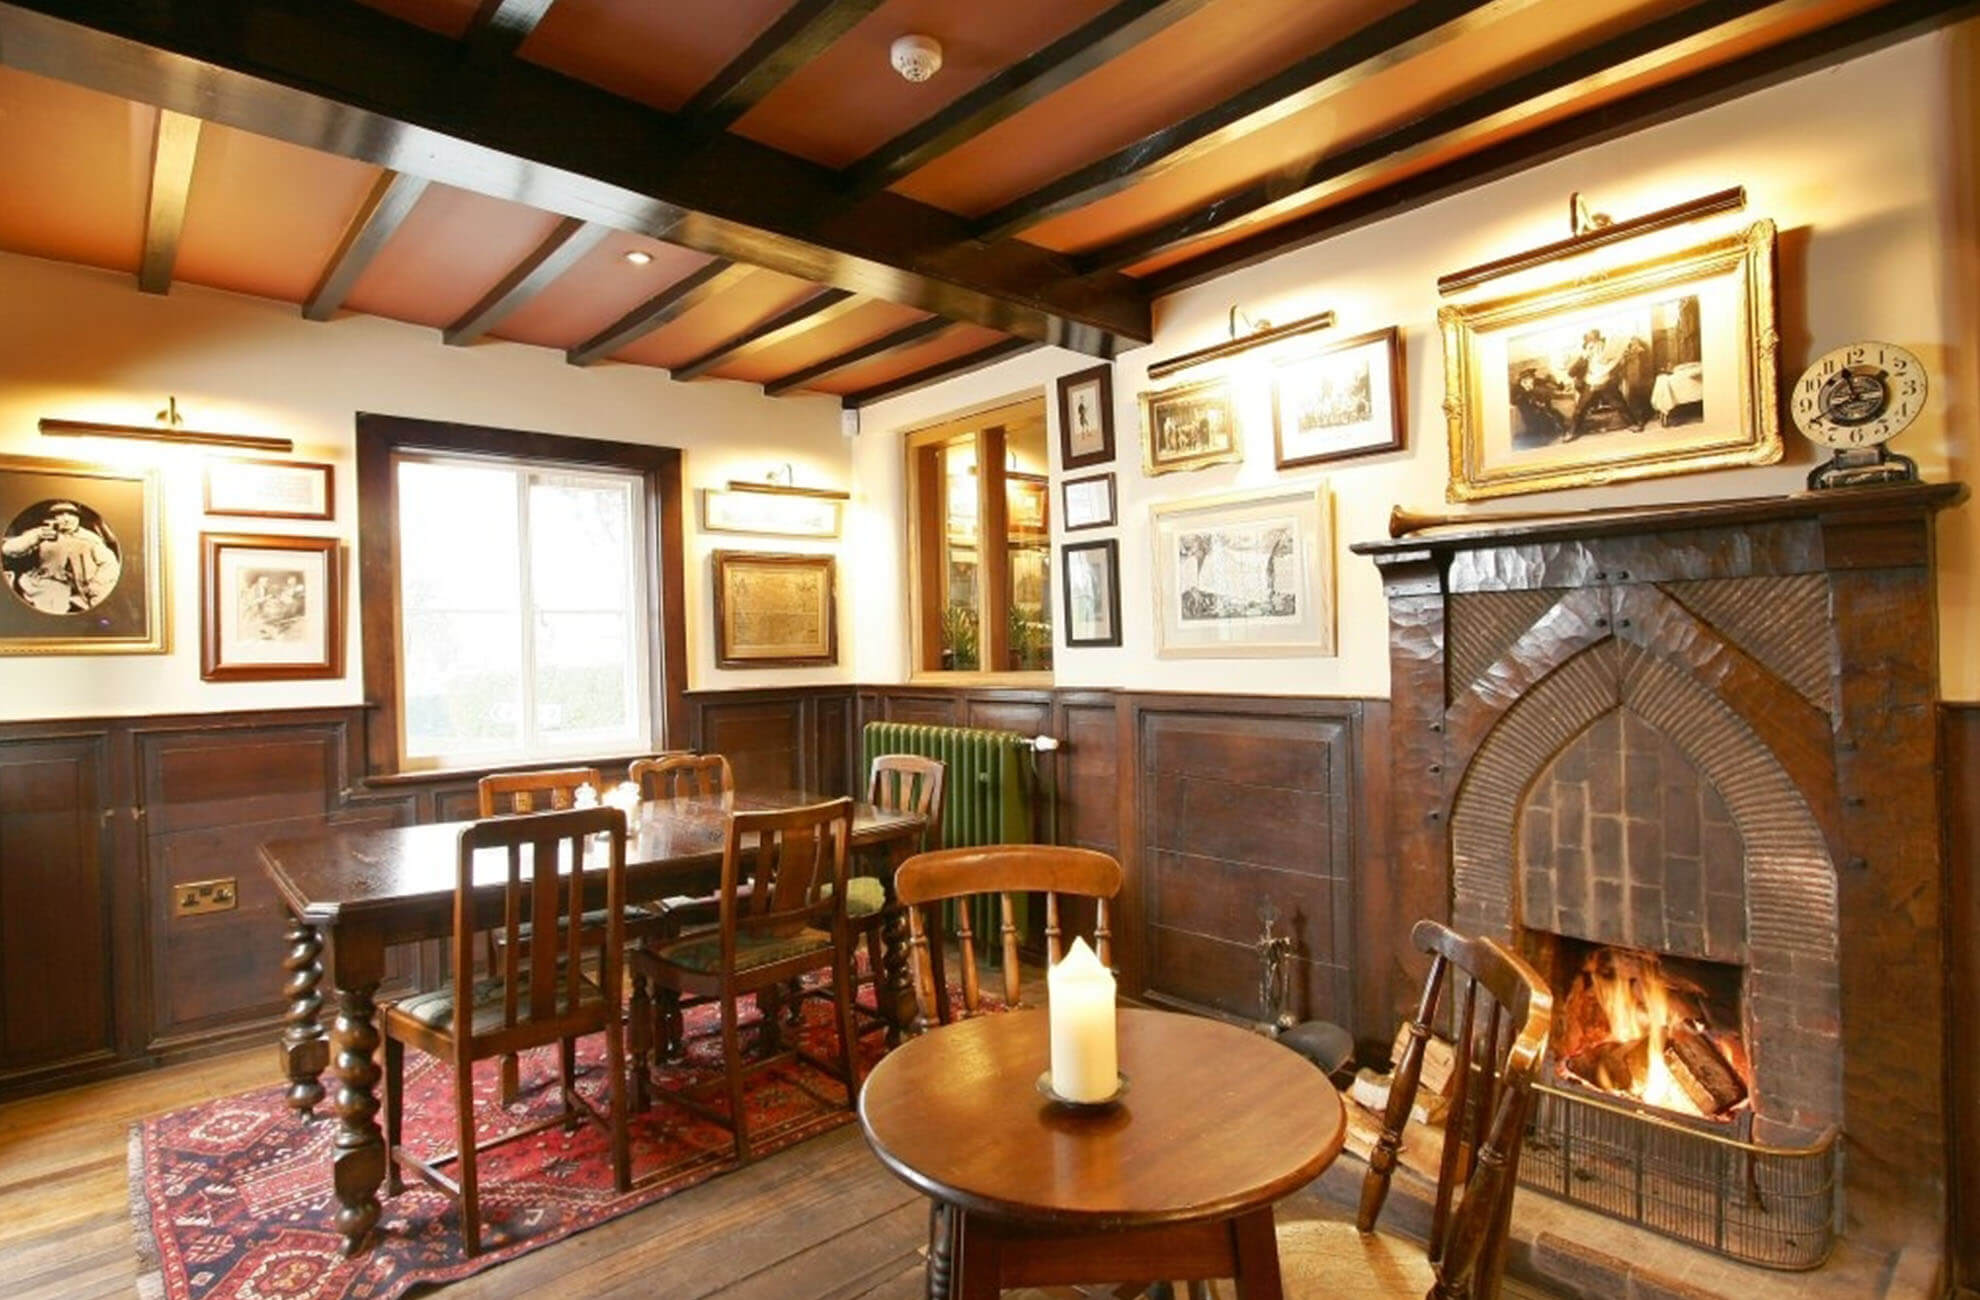 The Combermere Arms pub Is only a mile away from Combermere Abbey In Cheshire